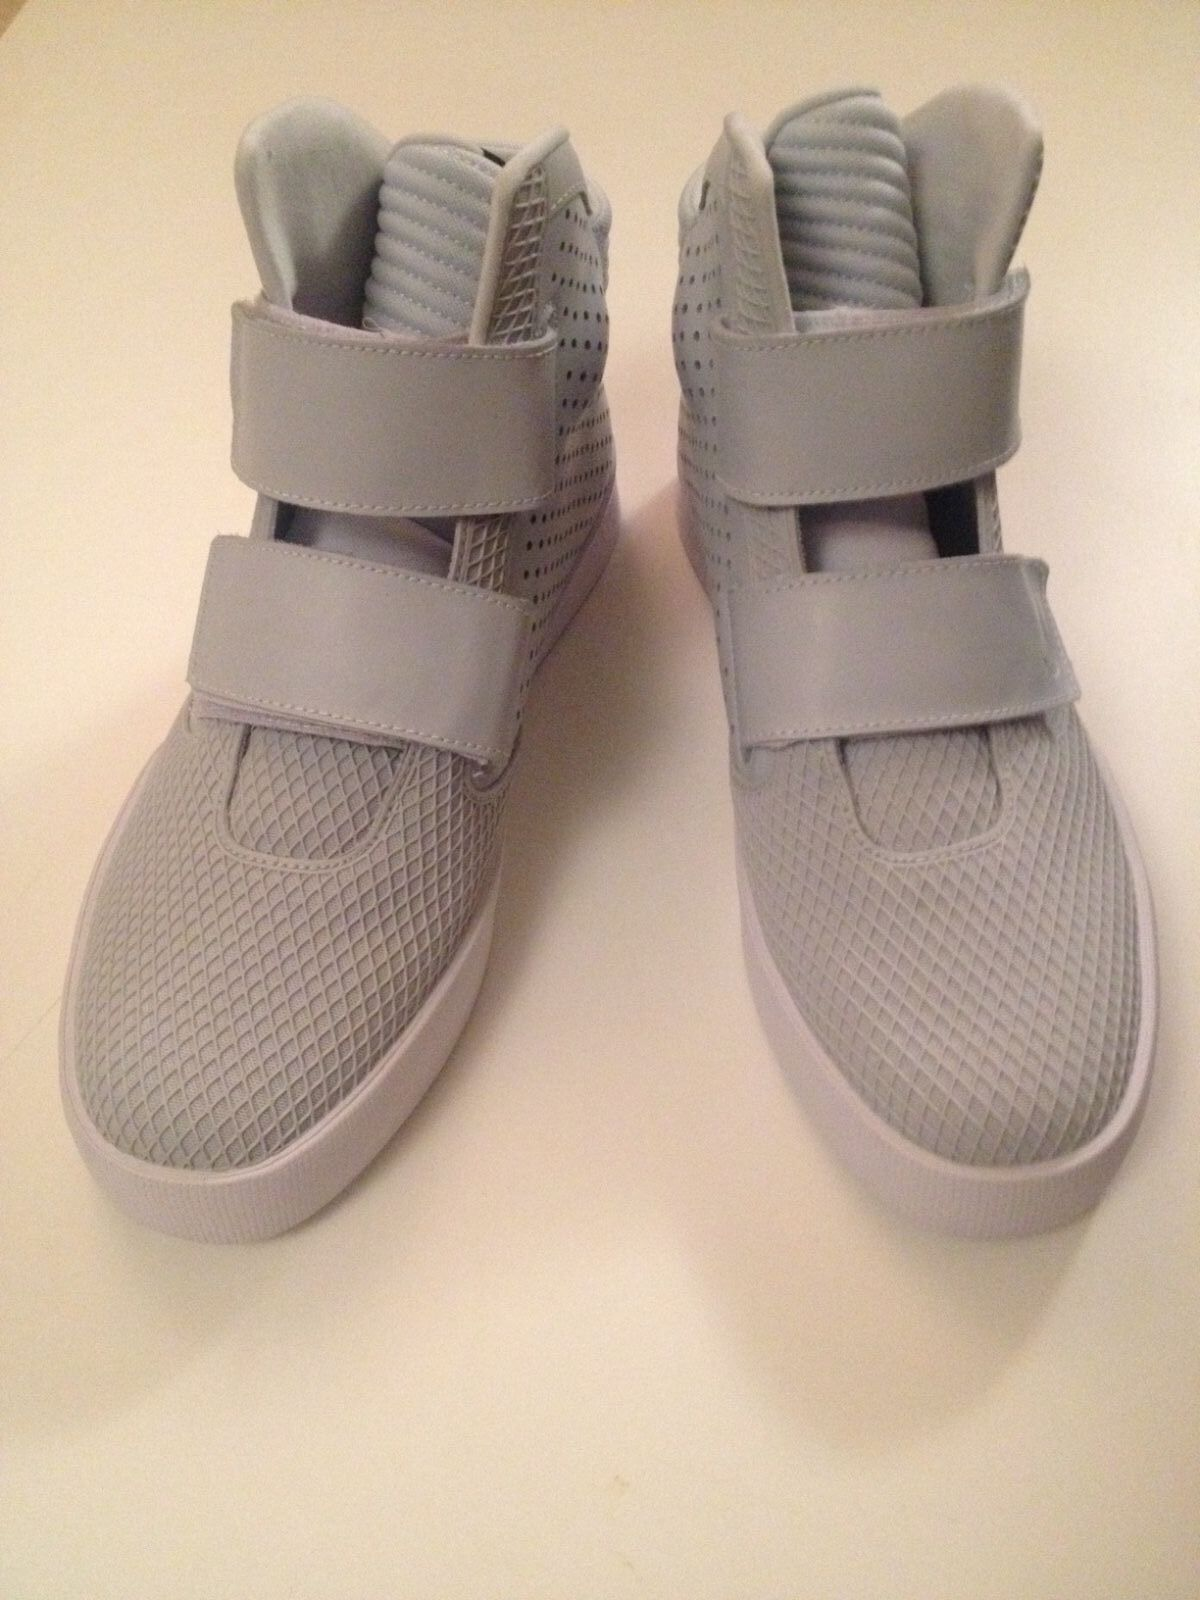 New!!! Grey Nike Mens Sneakers Price reduction The most popular shoes for men and women